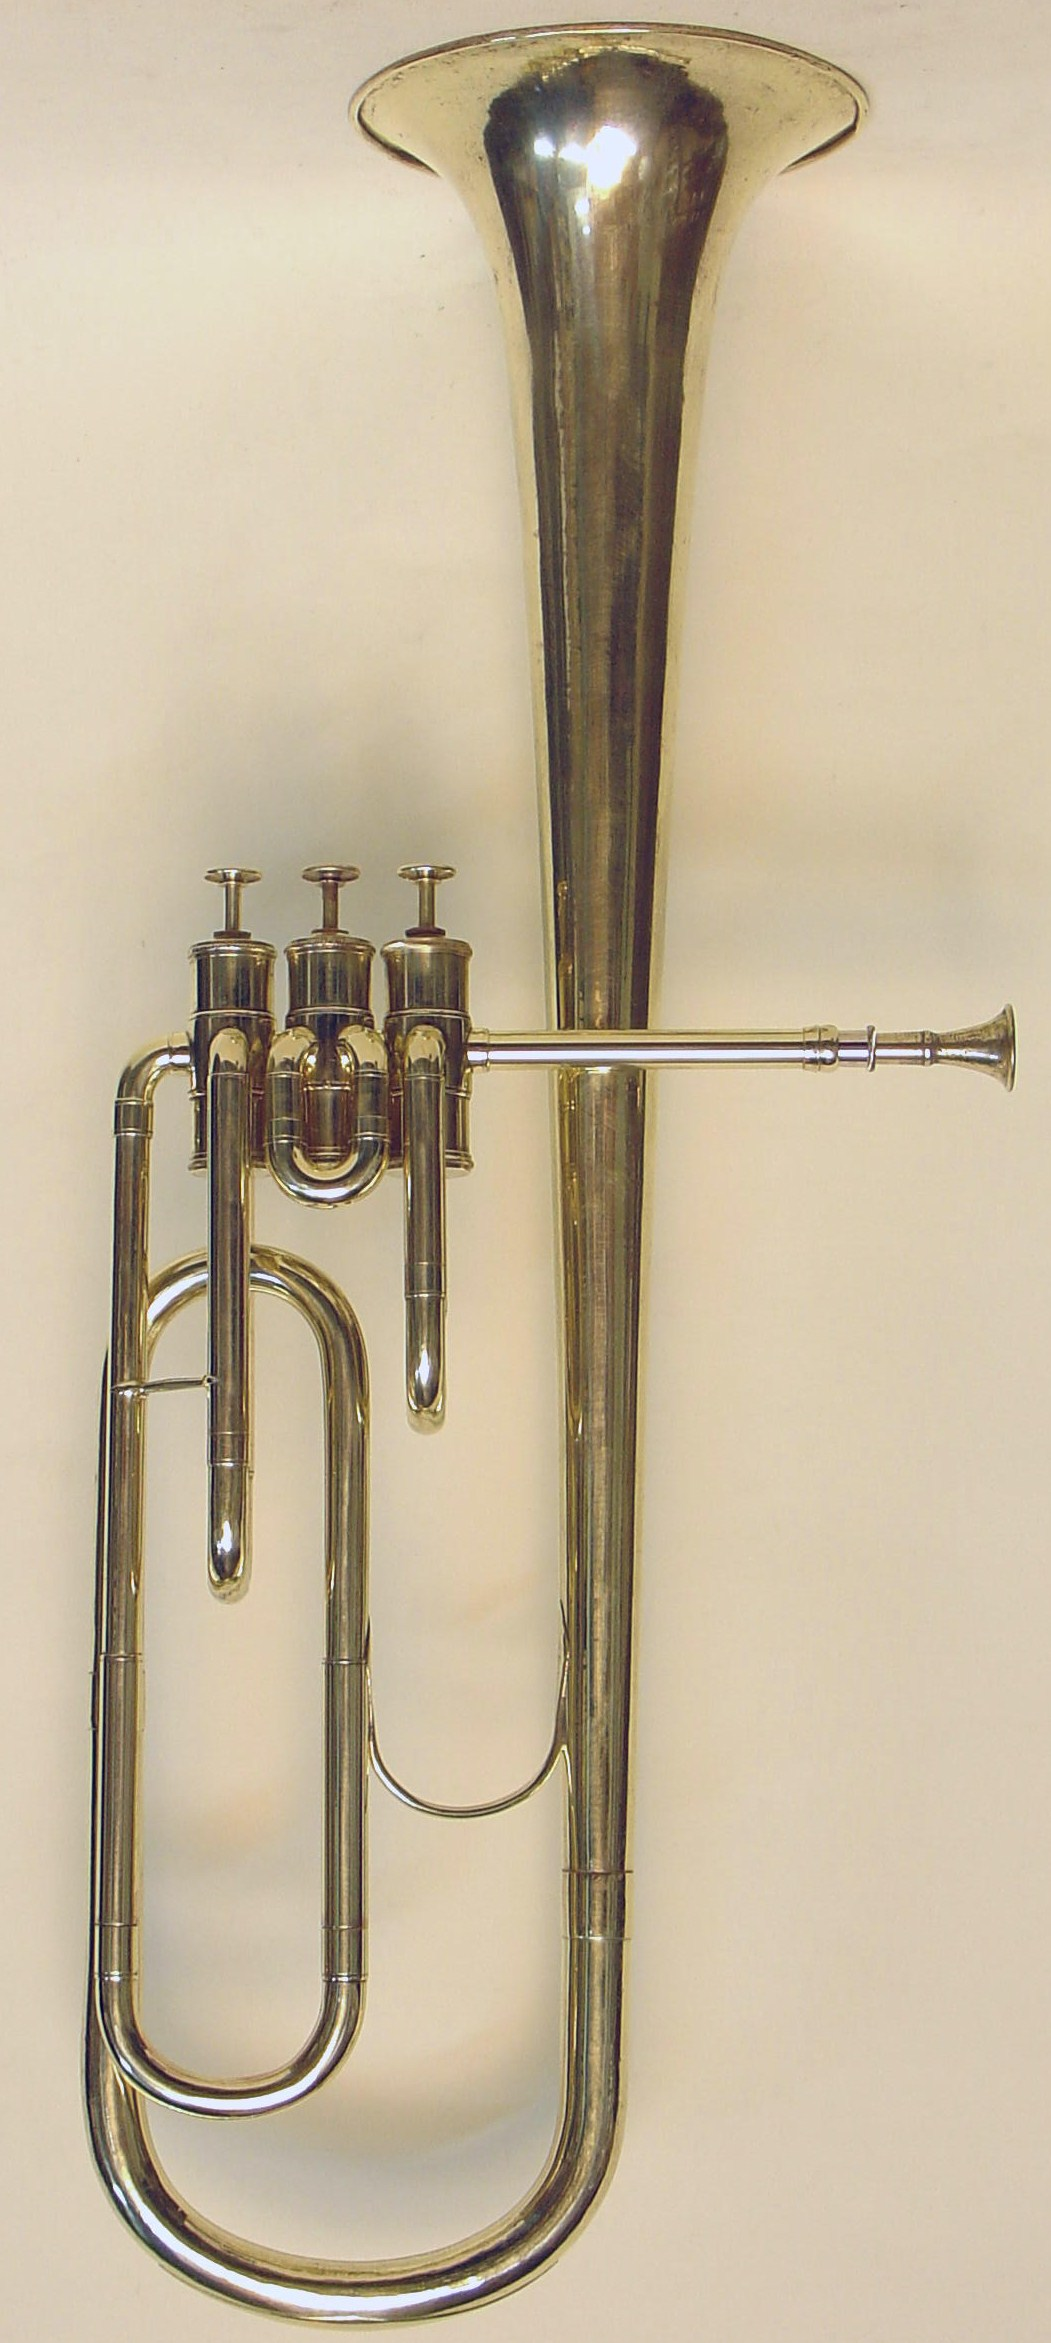 Civil War Era Saxhorn